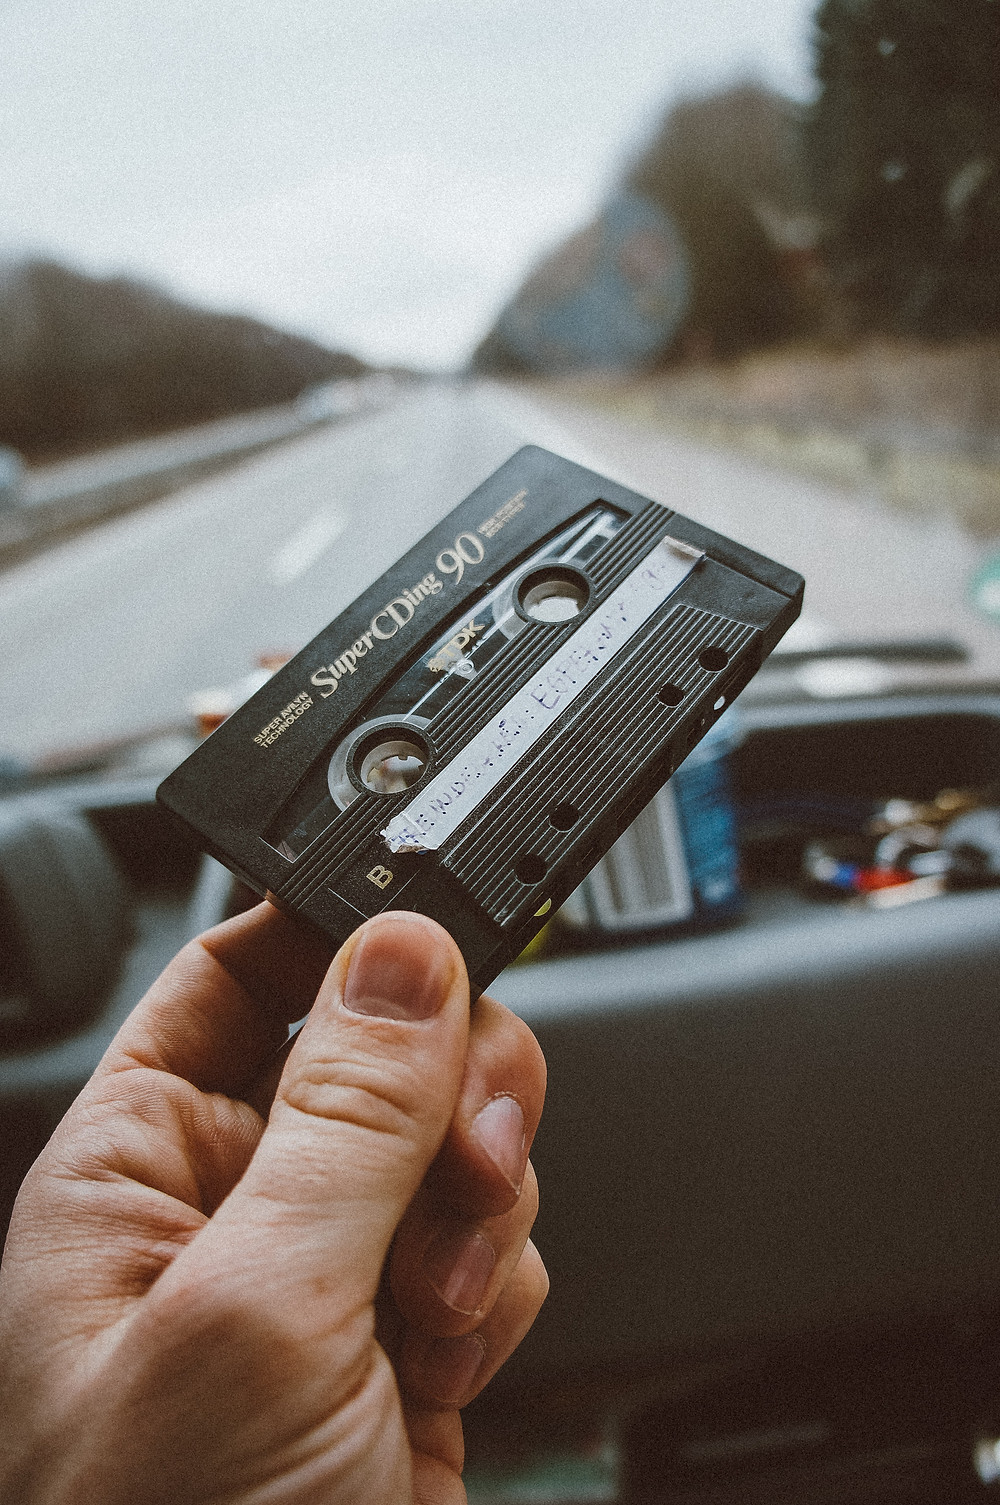 Hand holding cassette tape in vehicle